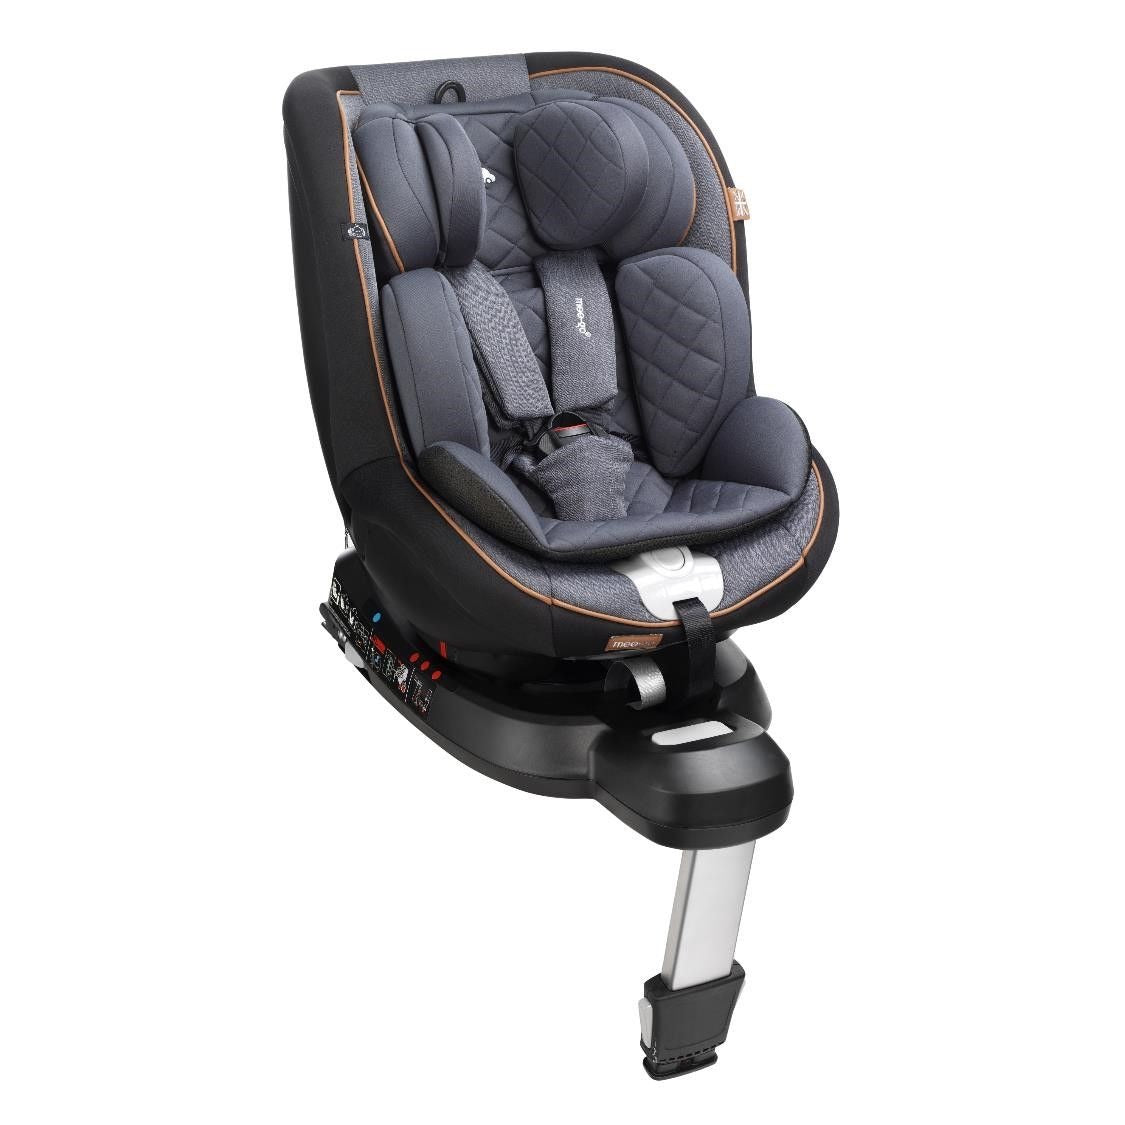 Mee-Go Swirl Black Caramel I-Size Group 0+/1 360 Spin Car Seat